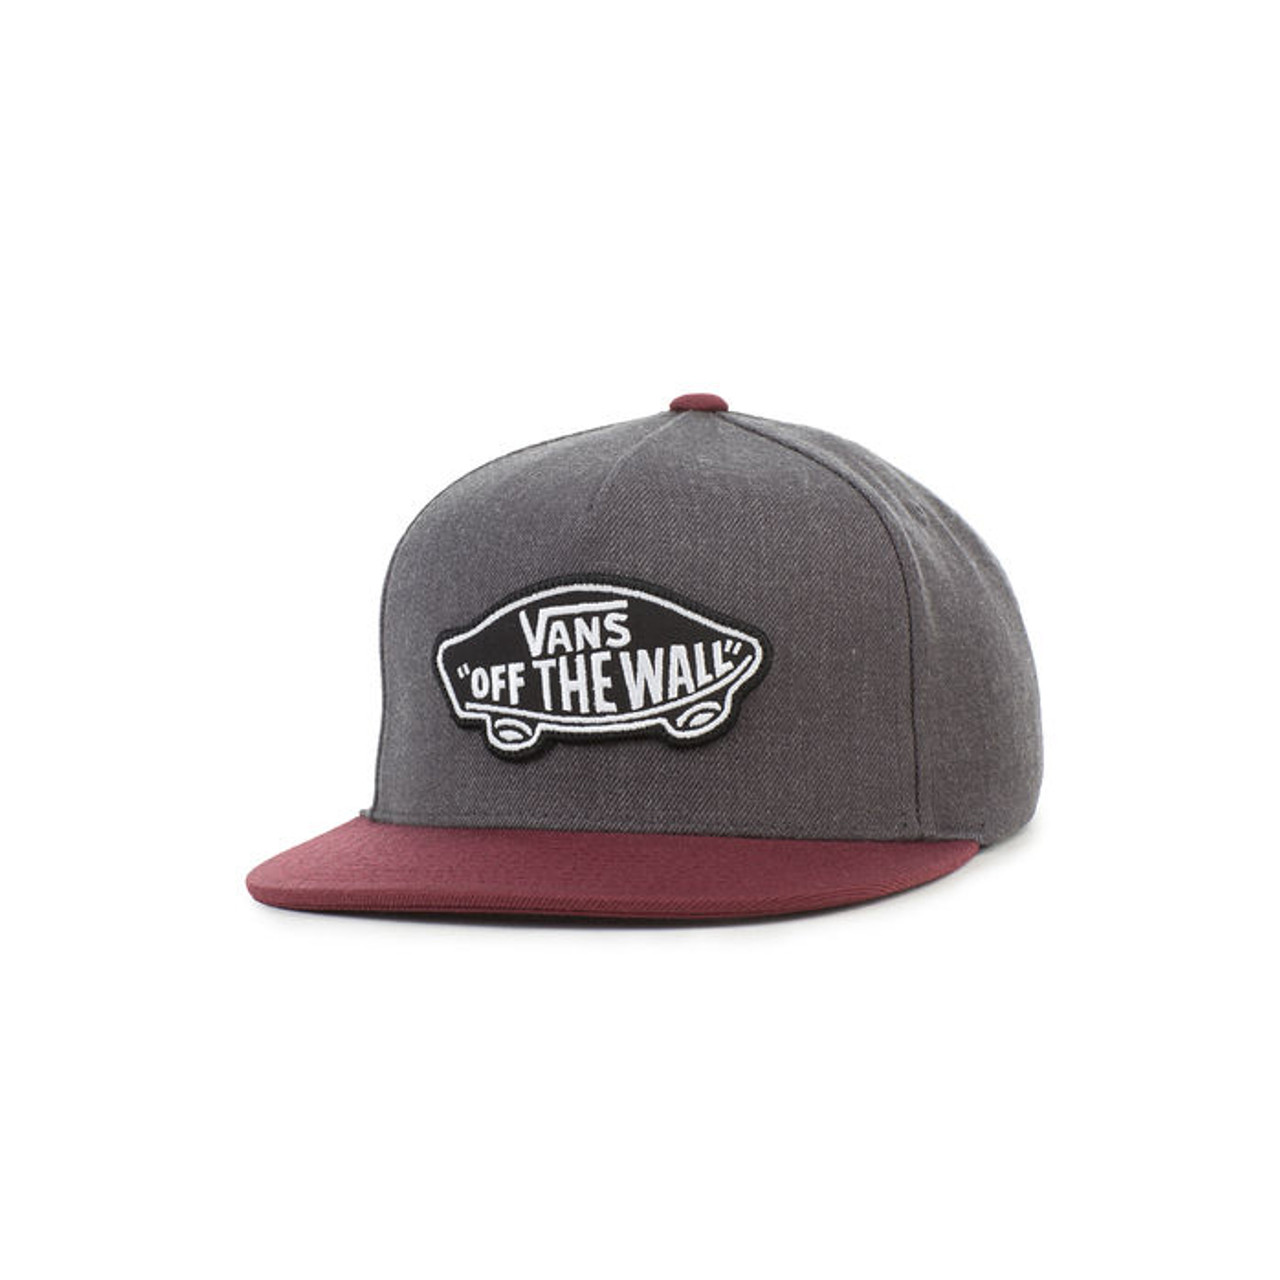 0f20e5c5a Vans Boy's Hat - Classic Patch Snapback - Heather Black/Port Royale